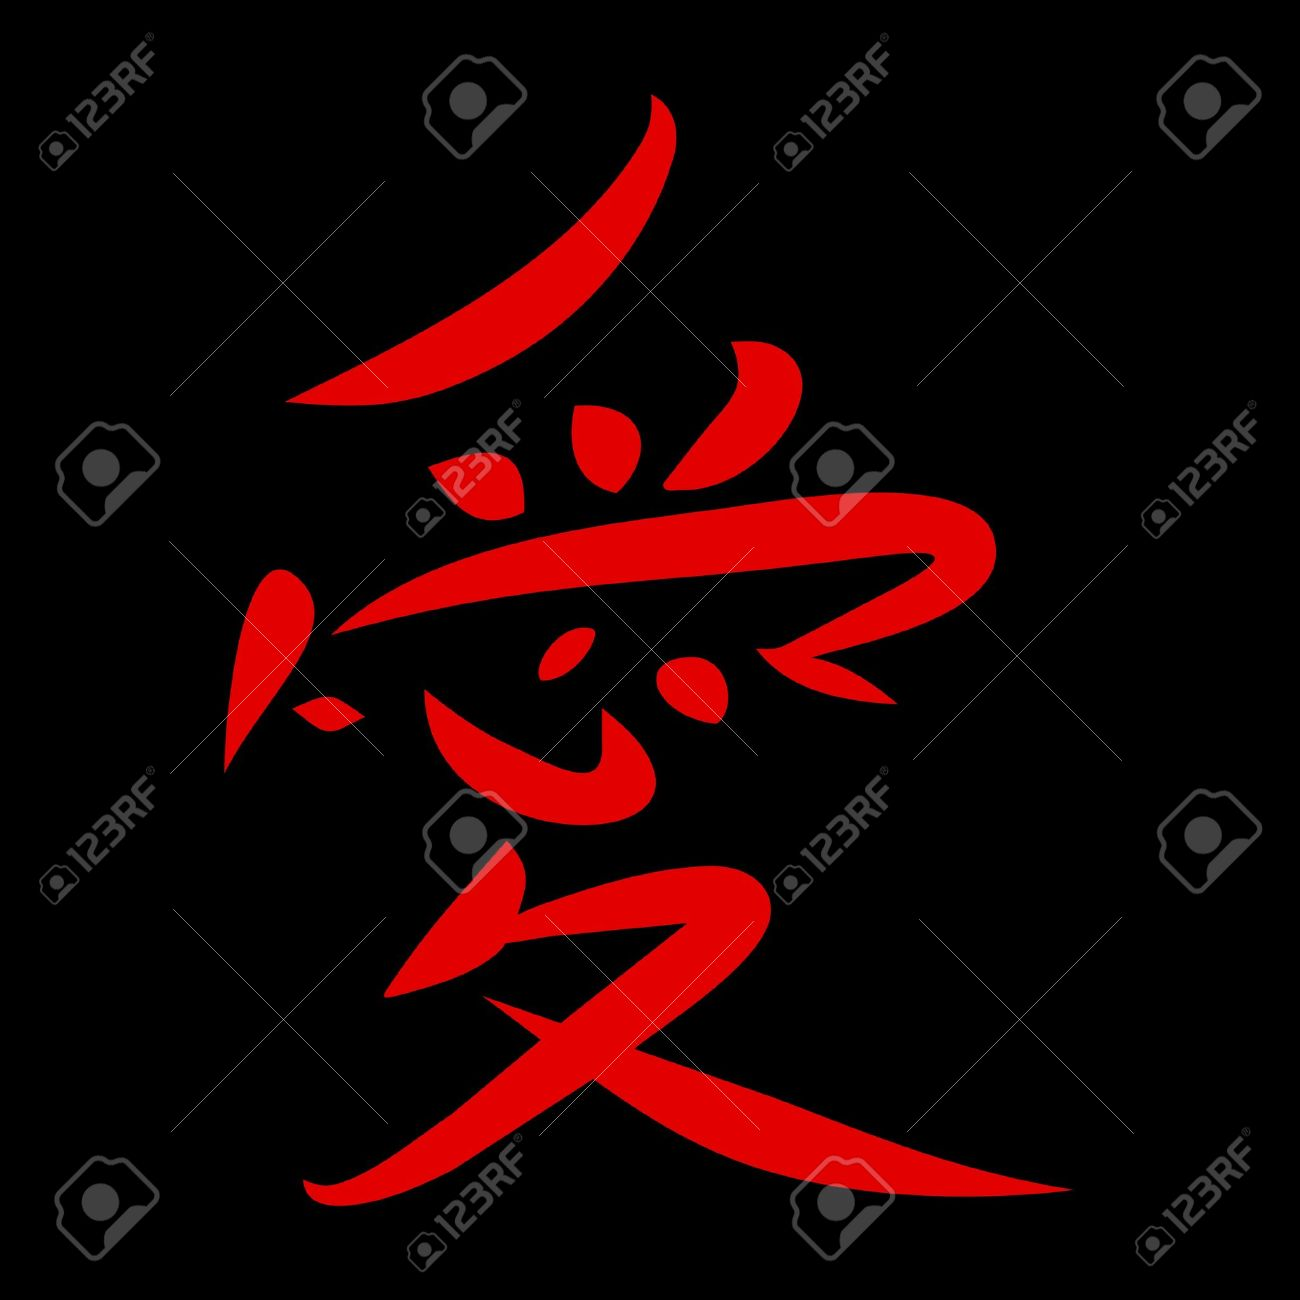 The Word Love In Chinese Writing Amazing Wallpapers